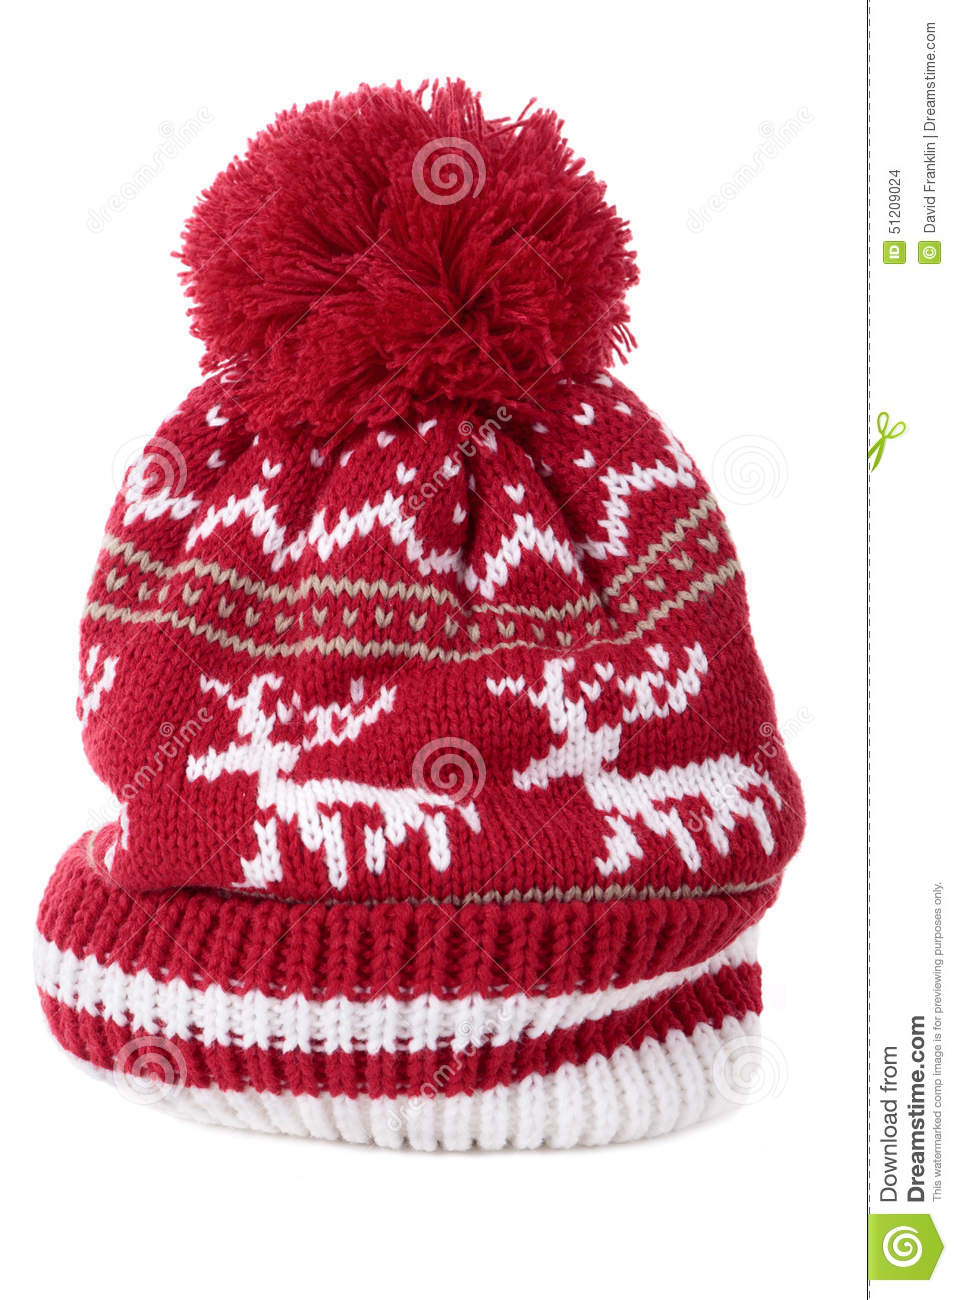 5644f092429 Bobble hat isolated against a white background